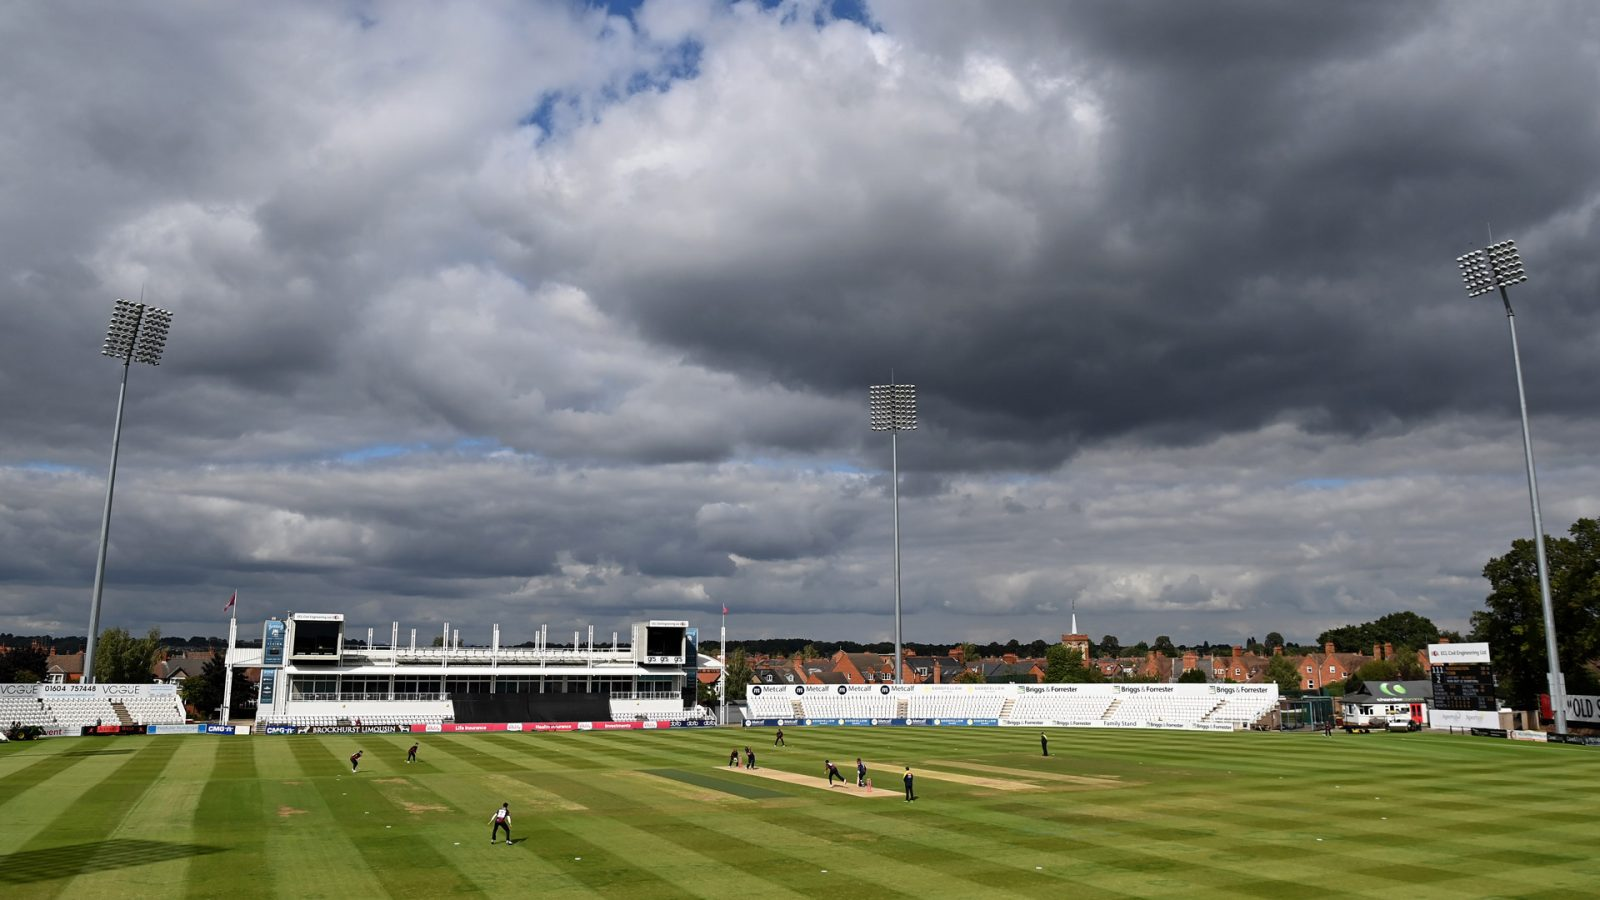 Upcoming Steelbacks Fixtures To Go Ahead As Scheduled